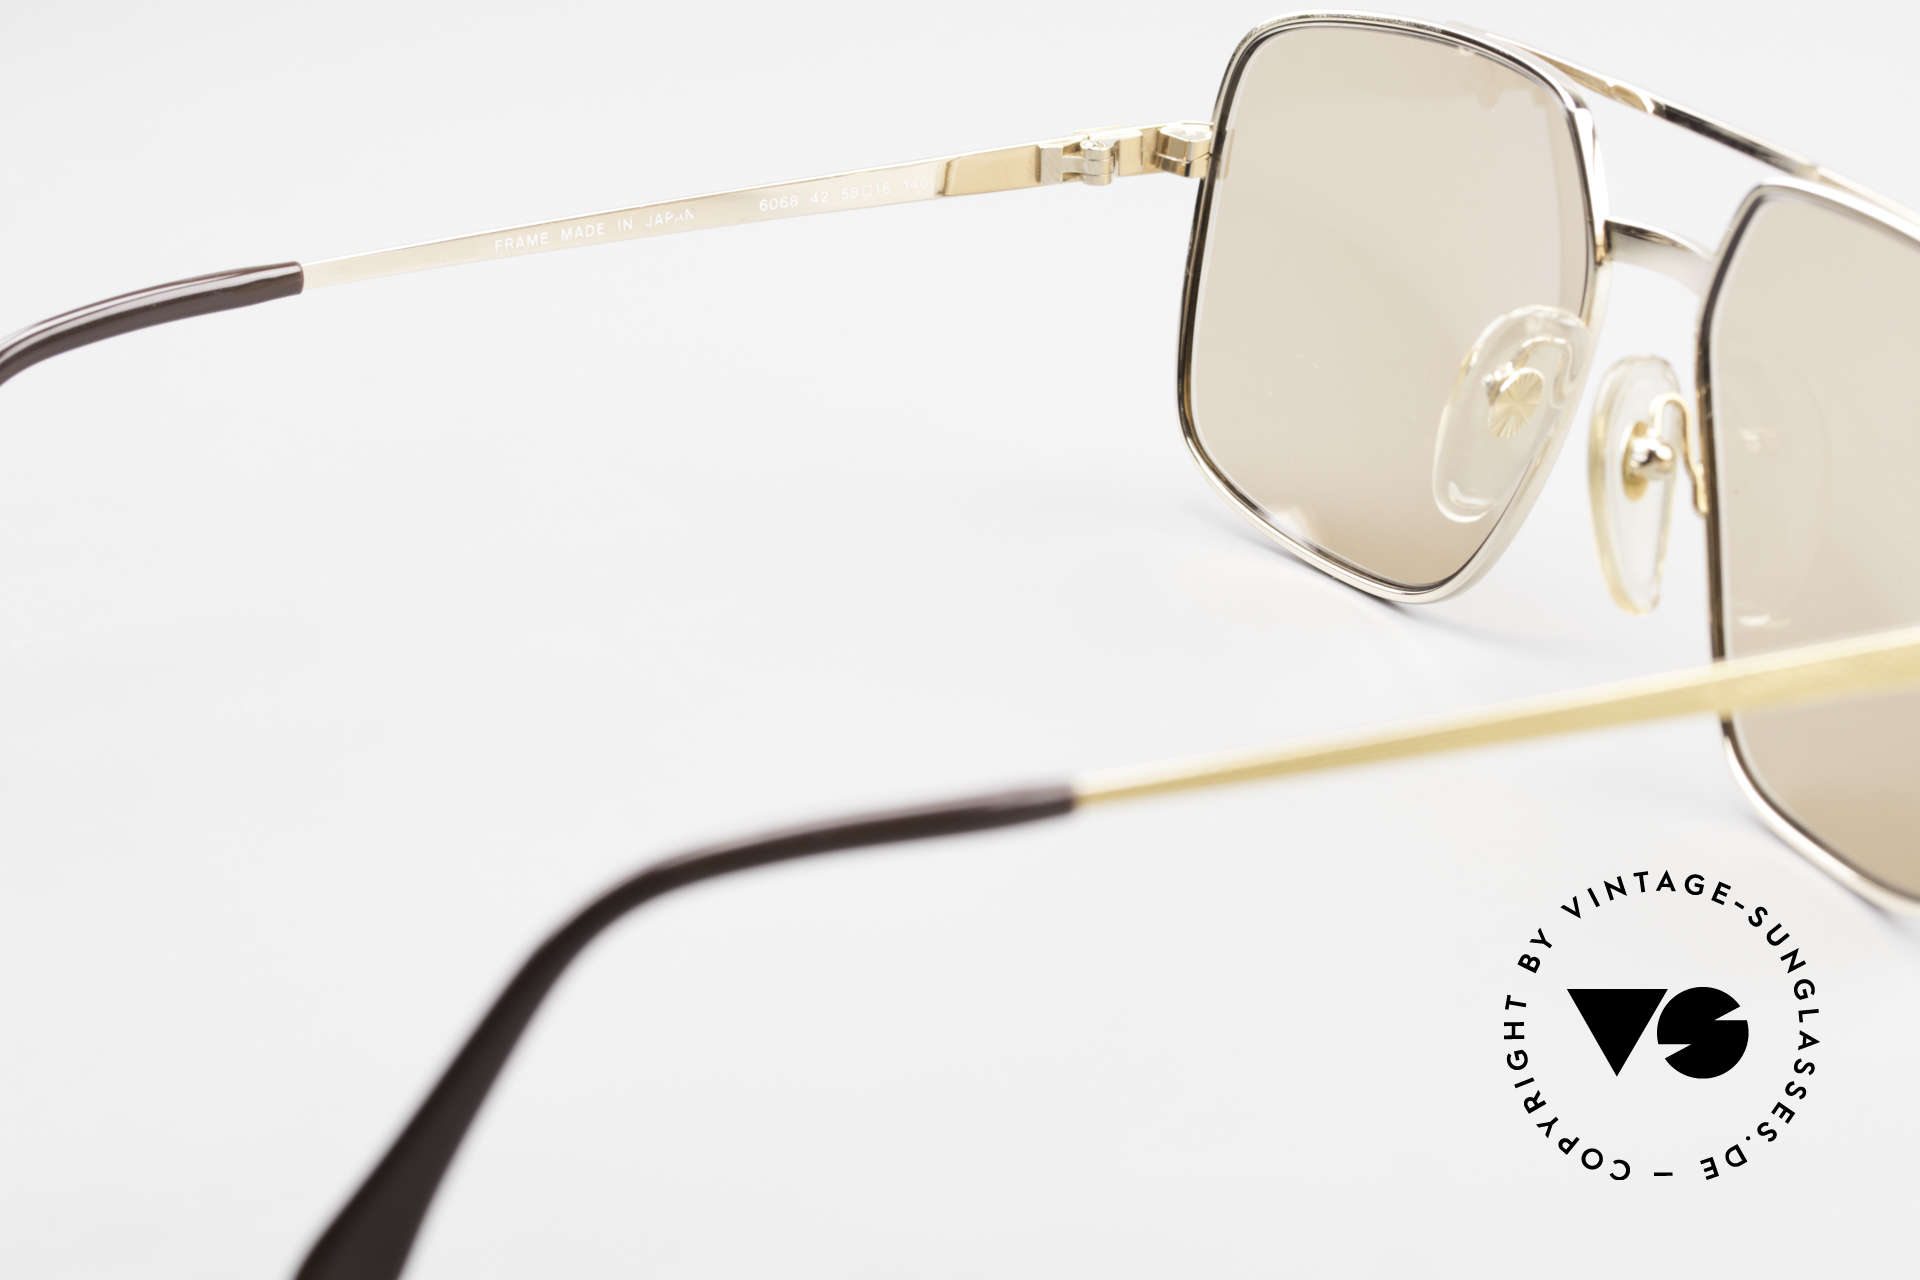 Dunhill 6068 Gold Plated Frame Changeable, NO RETRO SUNGLASSES, but a precious old ORIGINAL!, Made for Men